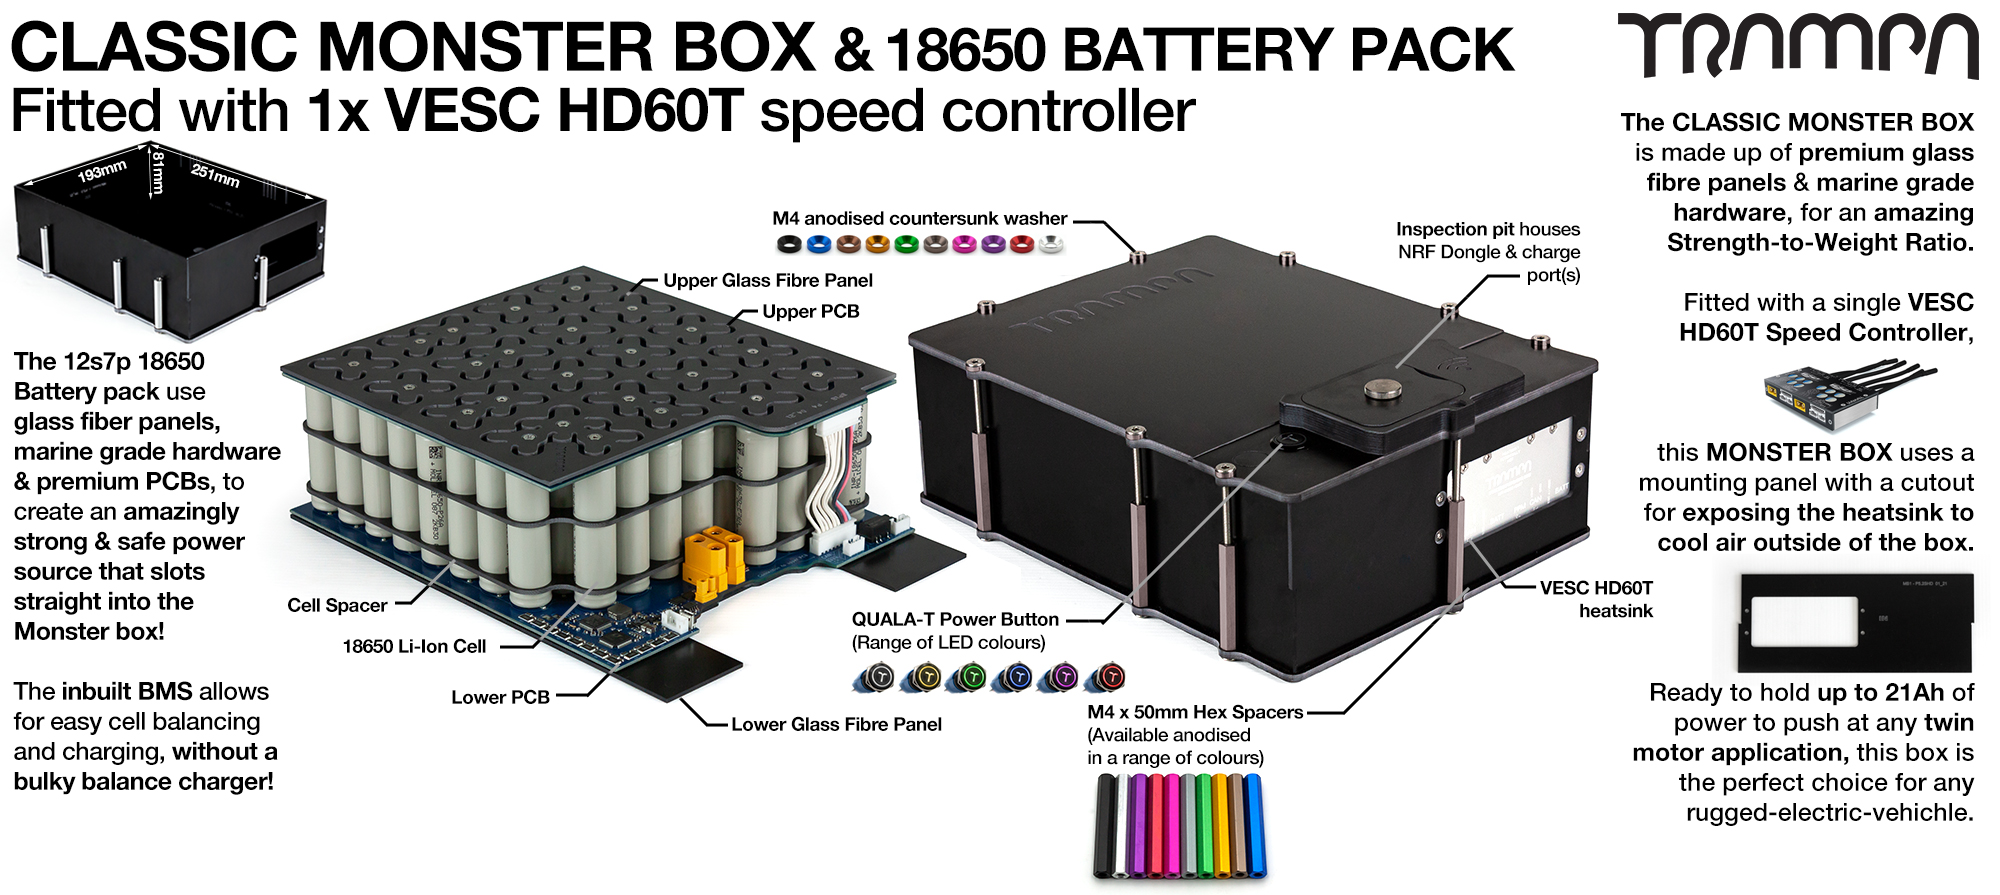 Classic MONSTER Box MkIV - with 18650 PCB Pack, 1x VESC HD-60Twin & 84x 18650 cells 12s7p 21Ah - PCB based Battery Pack with Integrated Battery Management System (BMS) - UK CUSTOMERS ONLY